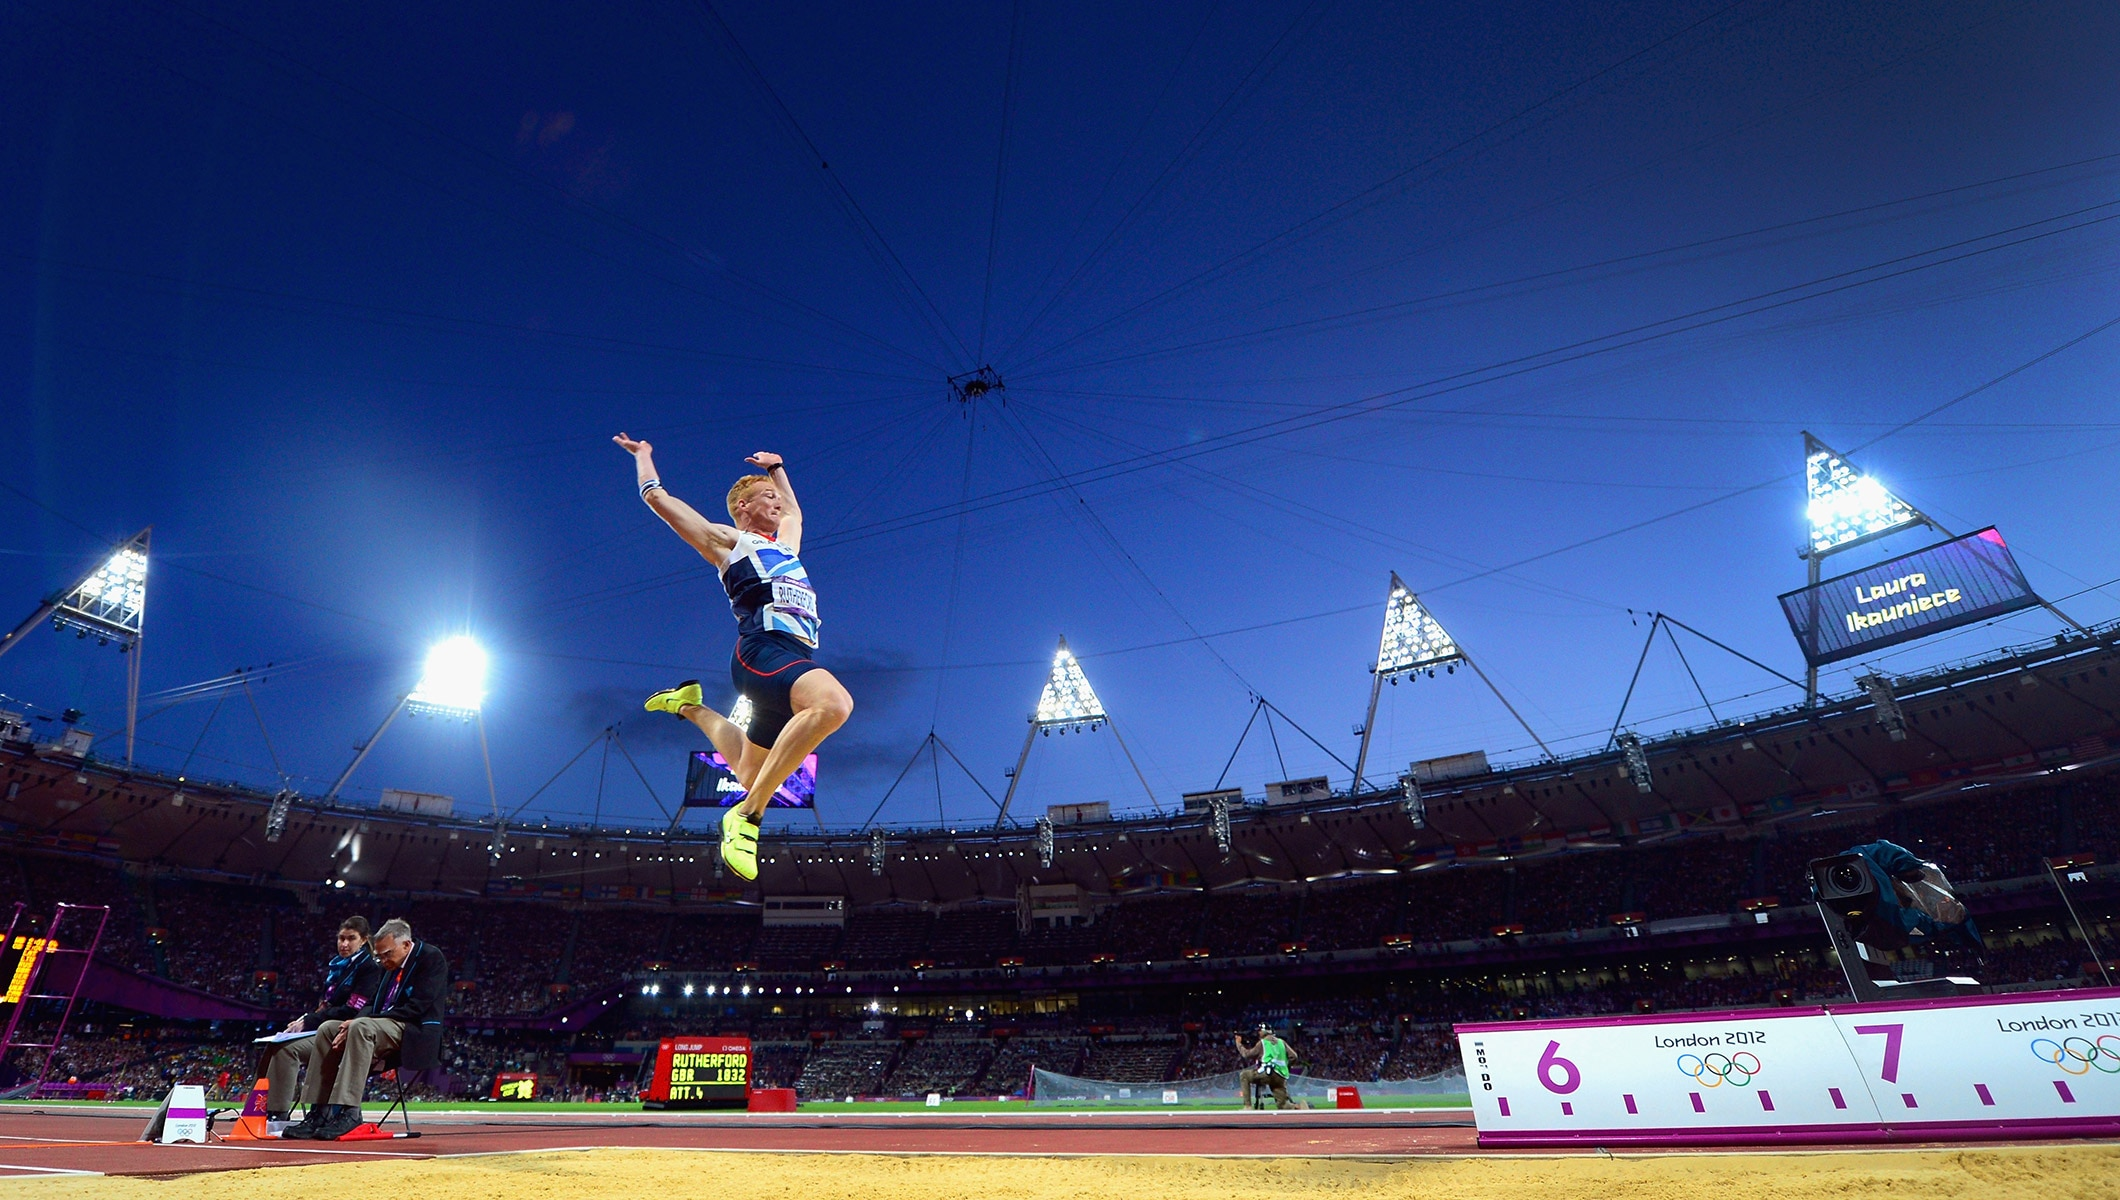 Six years on, London 2012 is still delivering a positive economic legacy